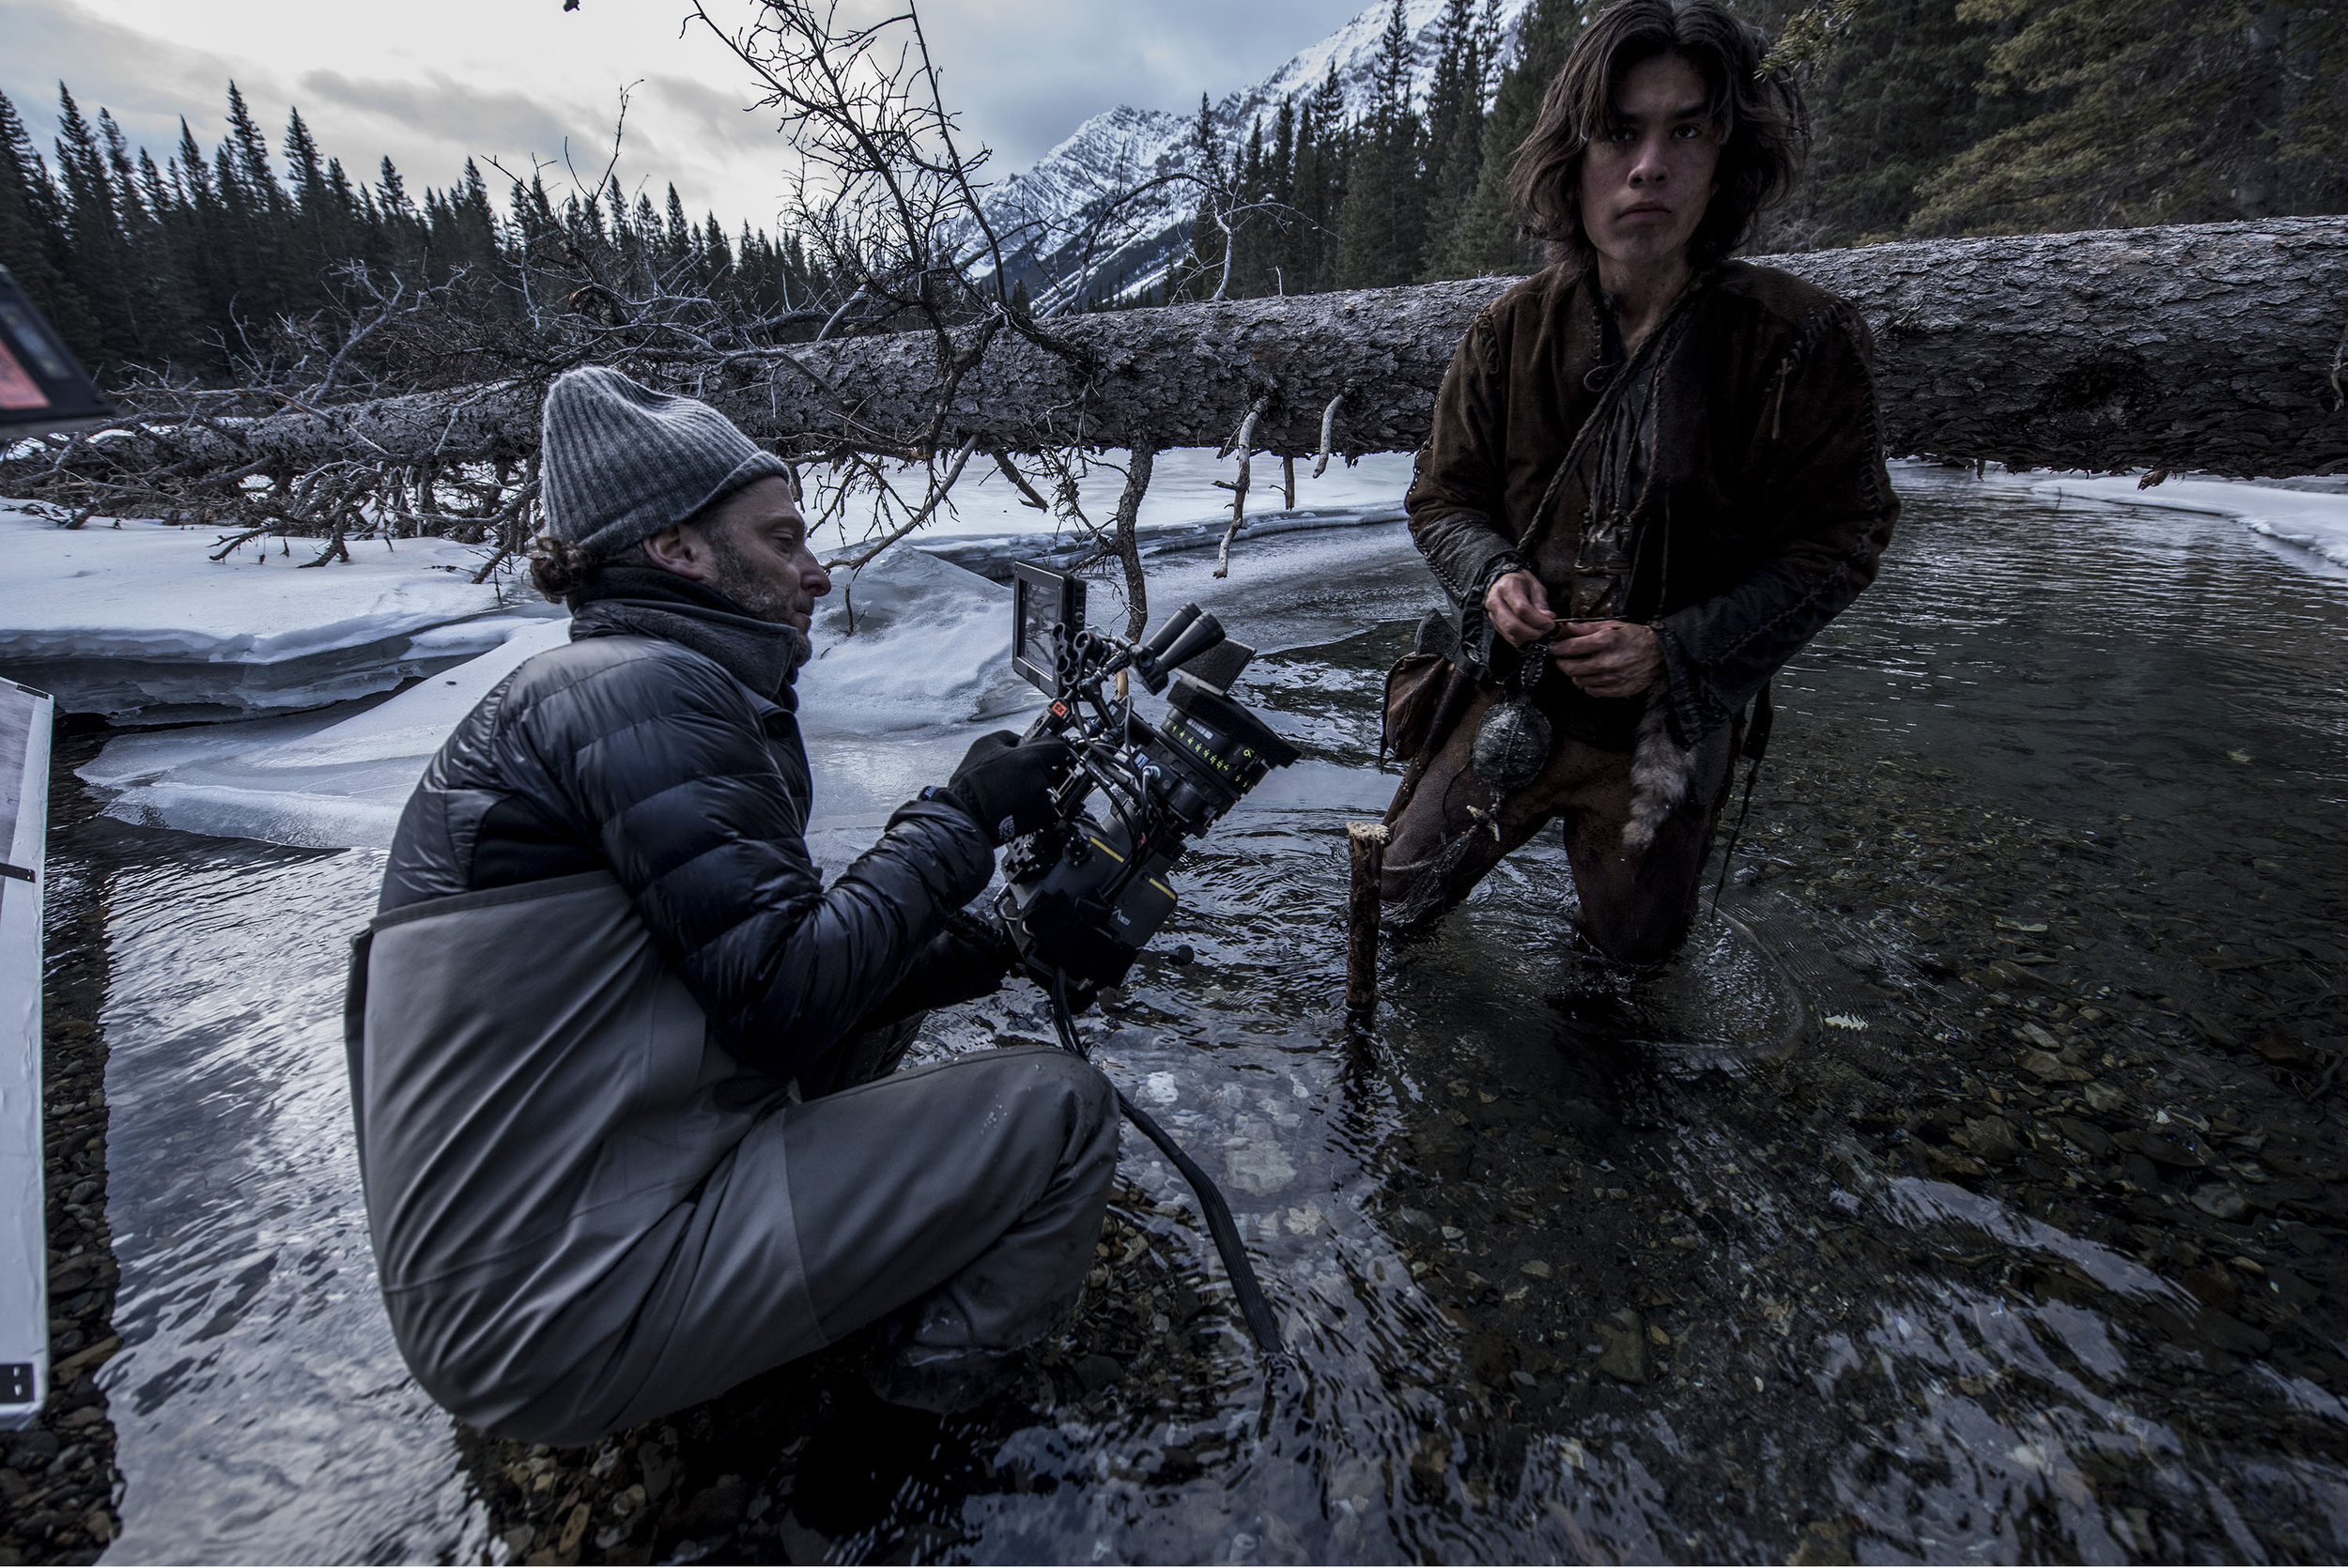 Emmanuel Lubezki, filming The Revenant. The digital sensor was one of many creative choices that gave the film its distinct tone. Credit: Kimberly Finch